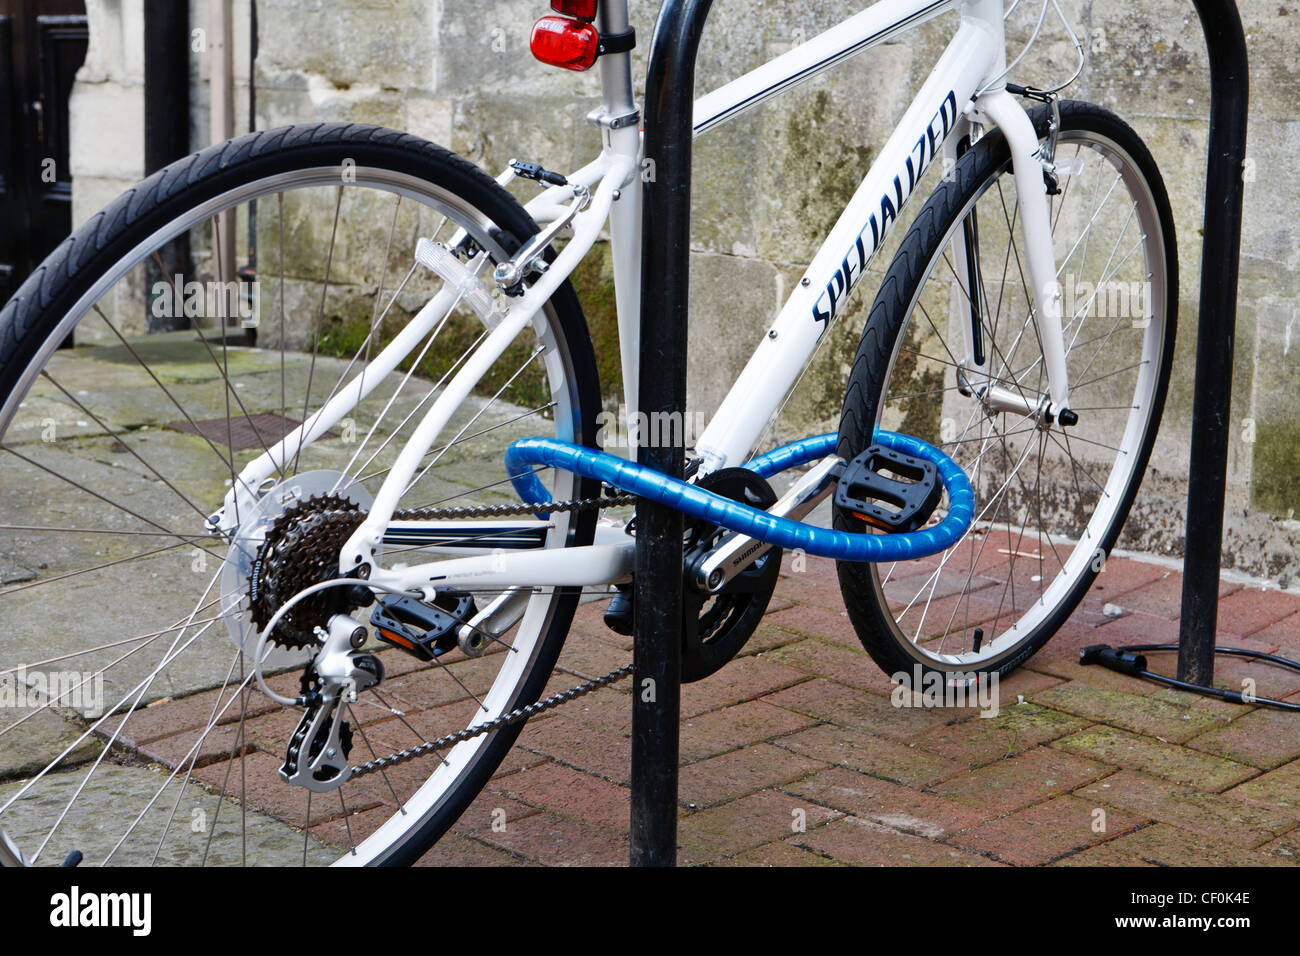 Expensive bicycle secured to a metal post with heavy duty chain and lock - Stock Image